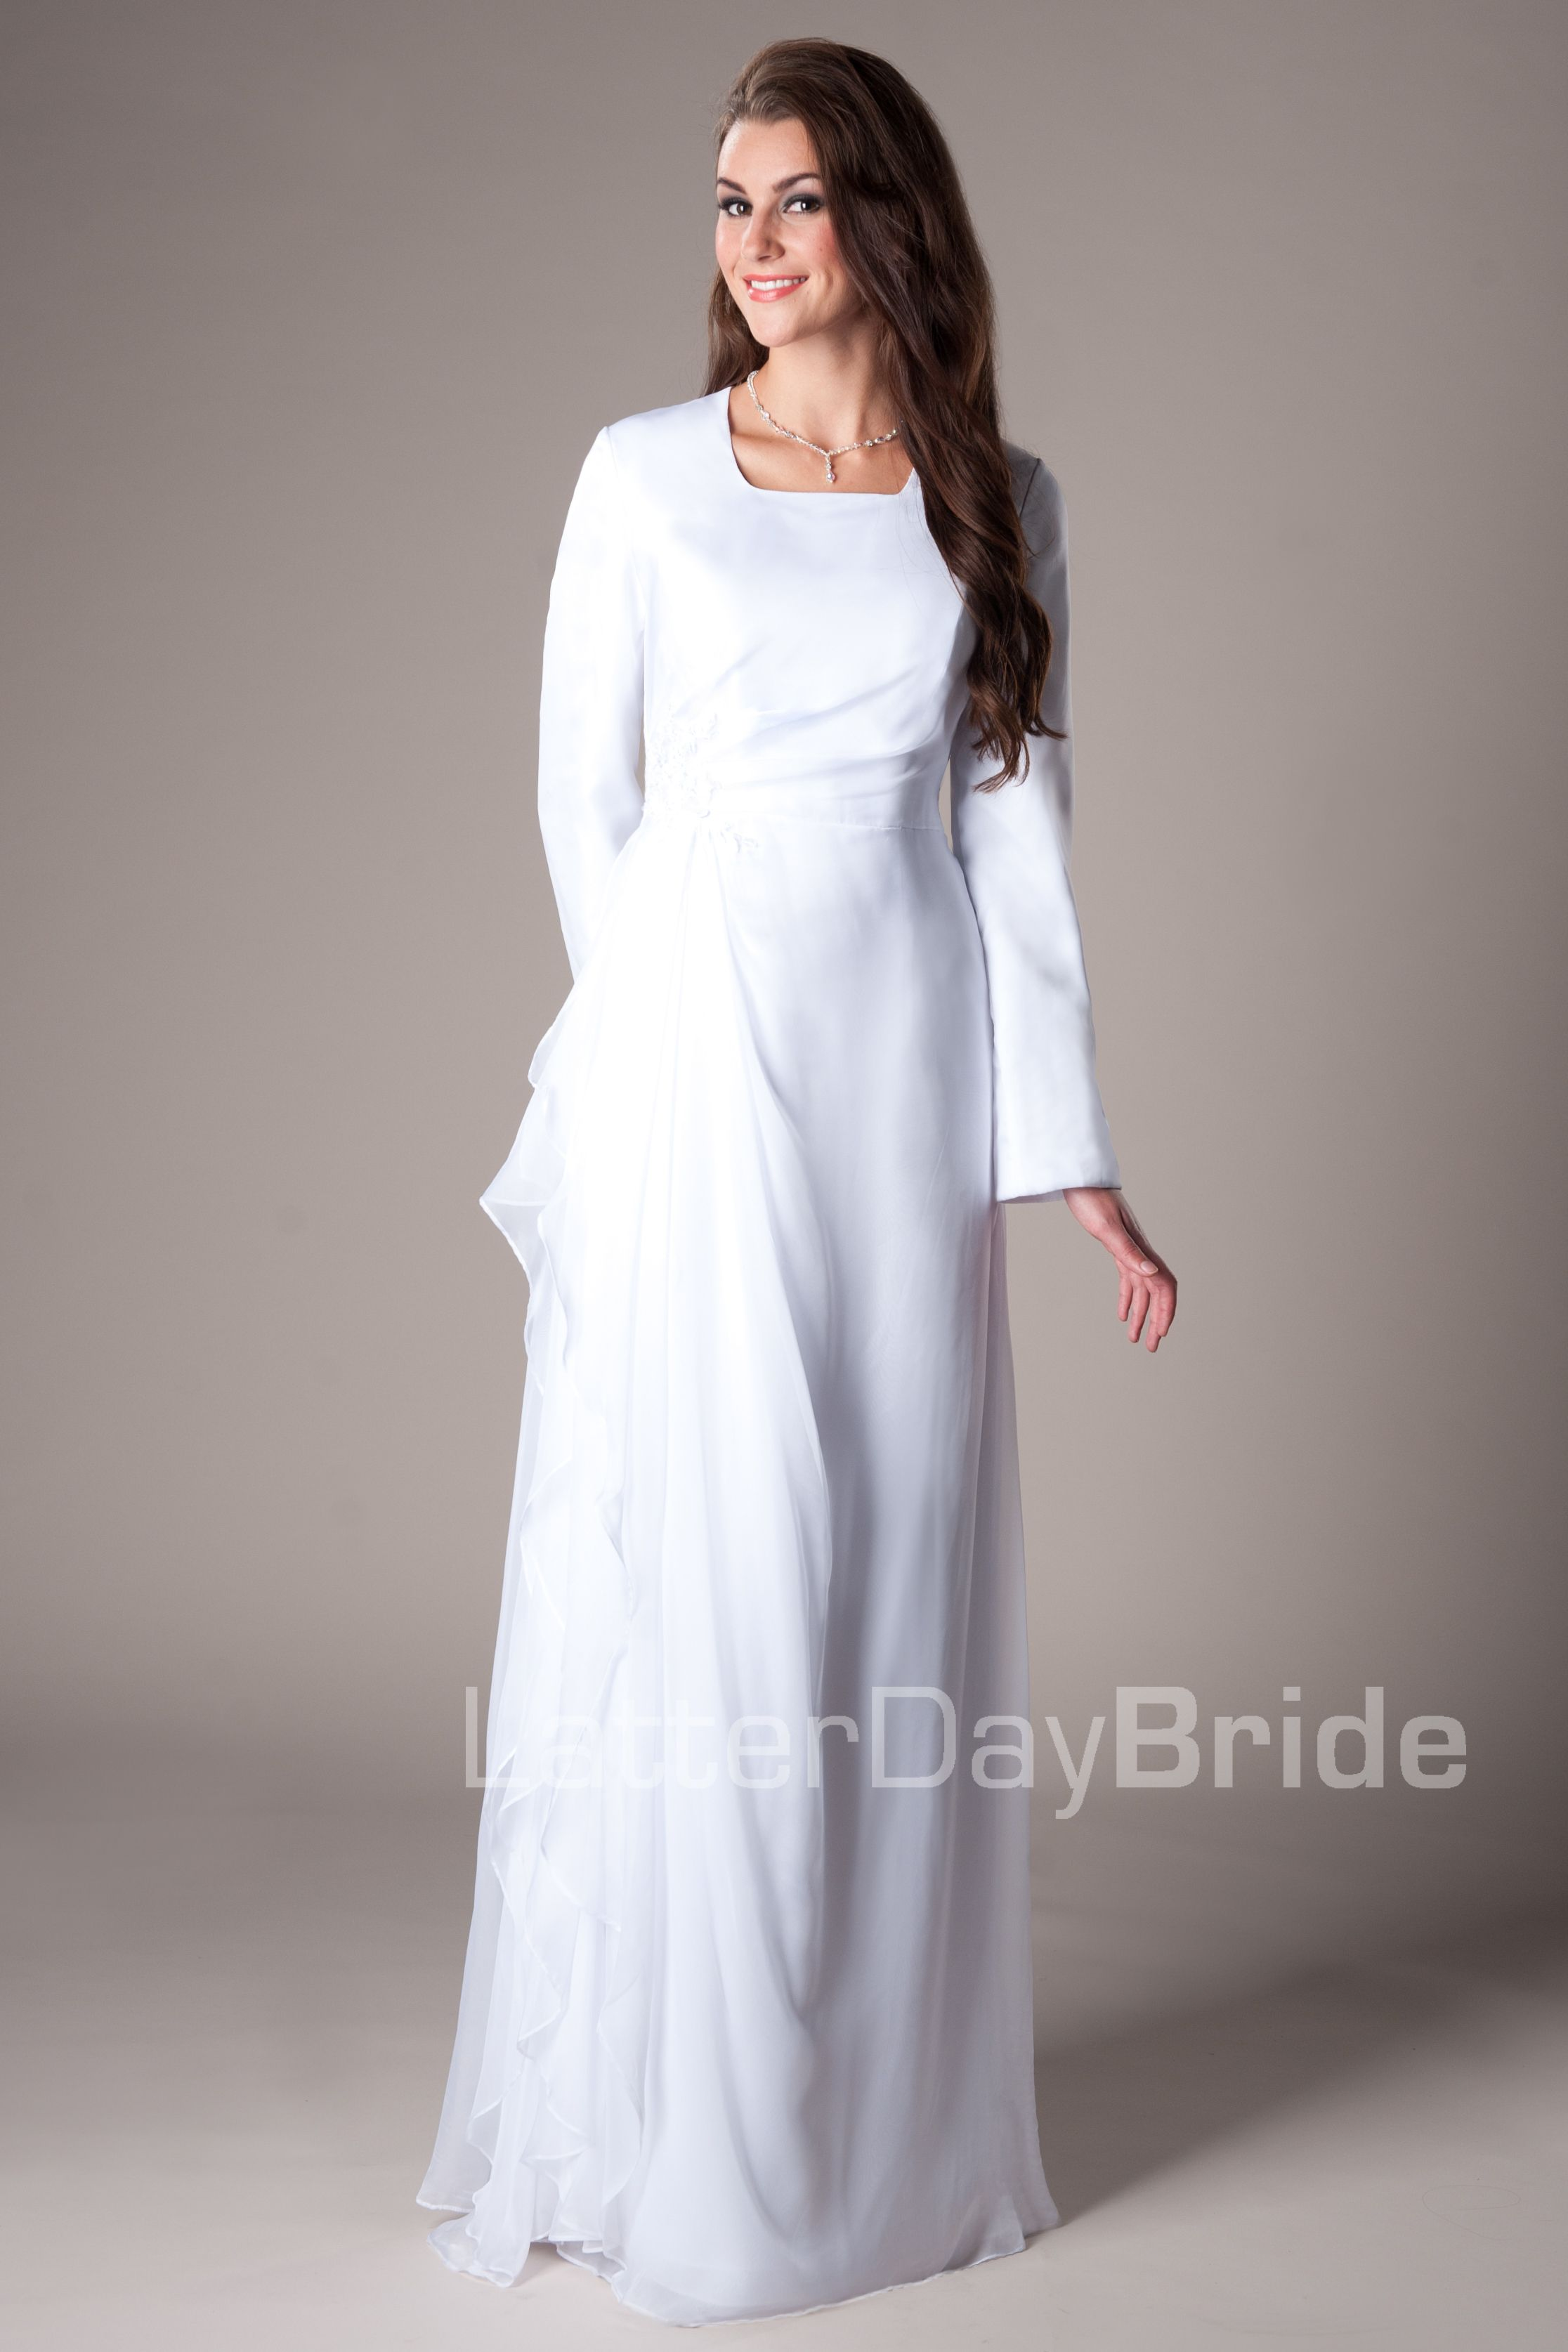 Provo temple dress from latter day bride moda sud for Latter day bride wedding dresses